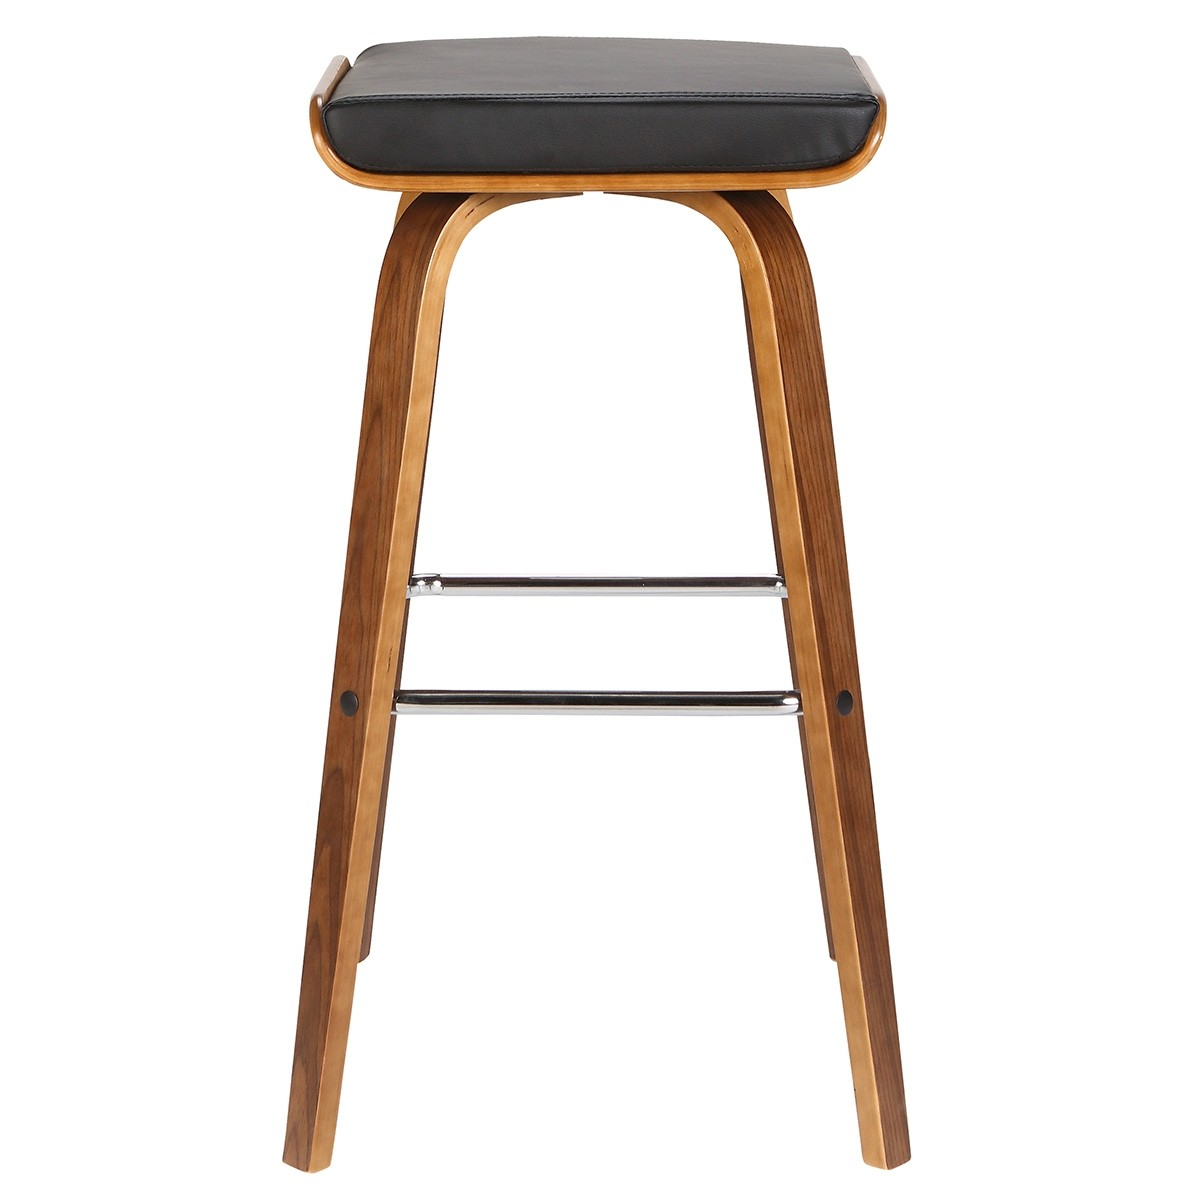 Maya Wooden Counter Stool with PU Seat, Black / Walnut